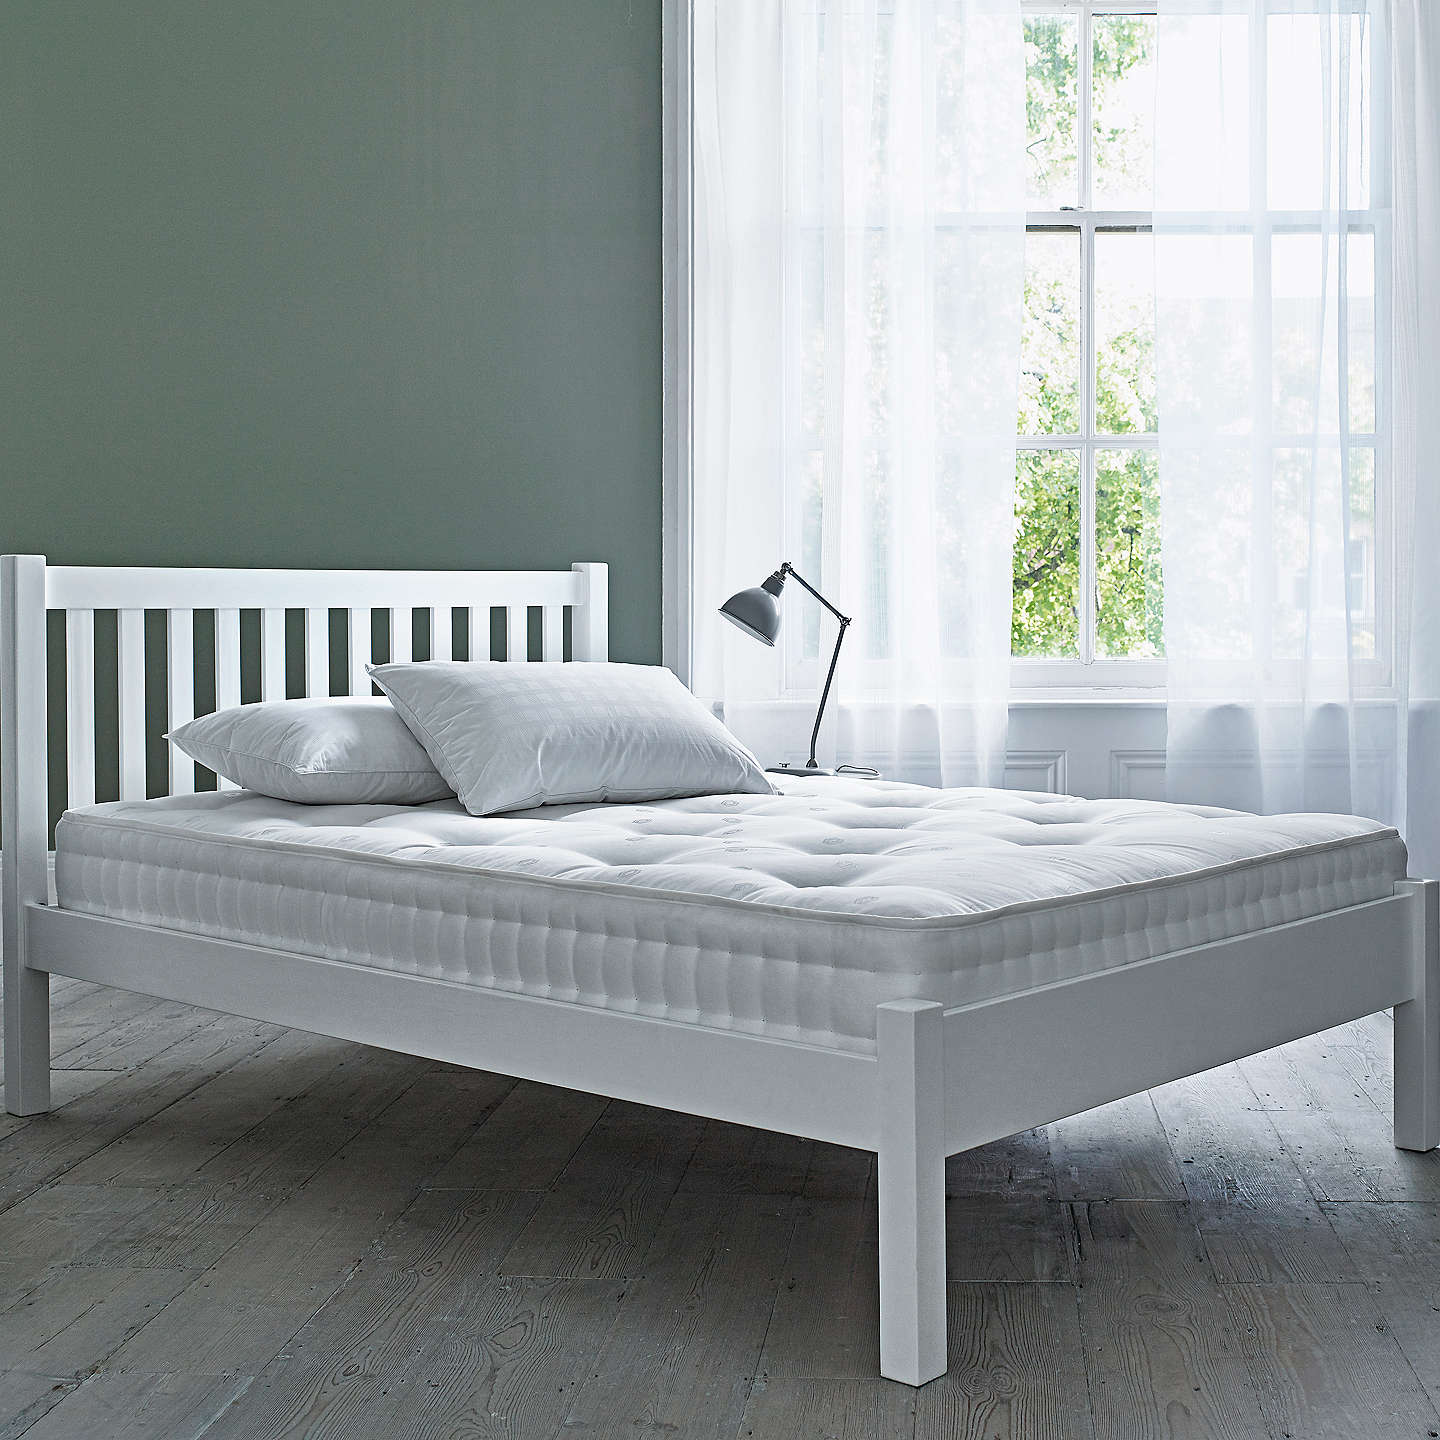 frame covered bed lewis size online rouen at main pdp rsp johnlewis grey fabric buyjohn king john